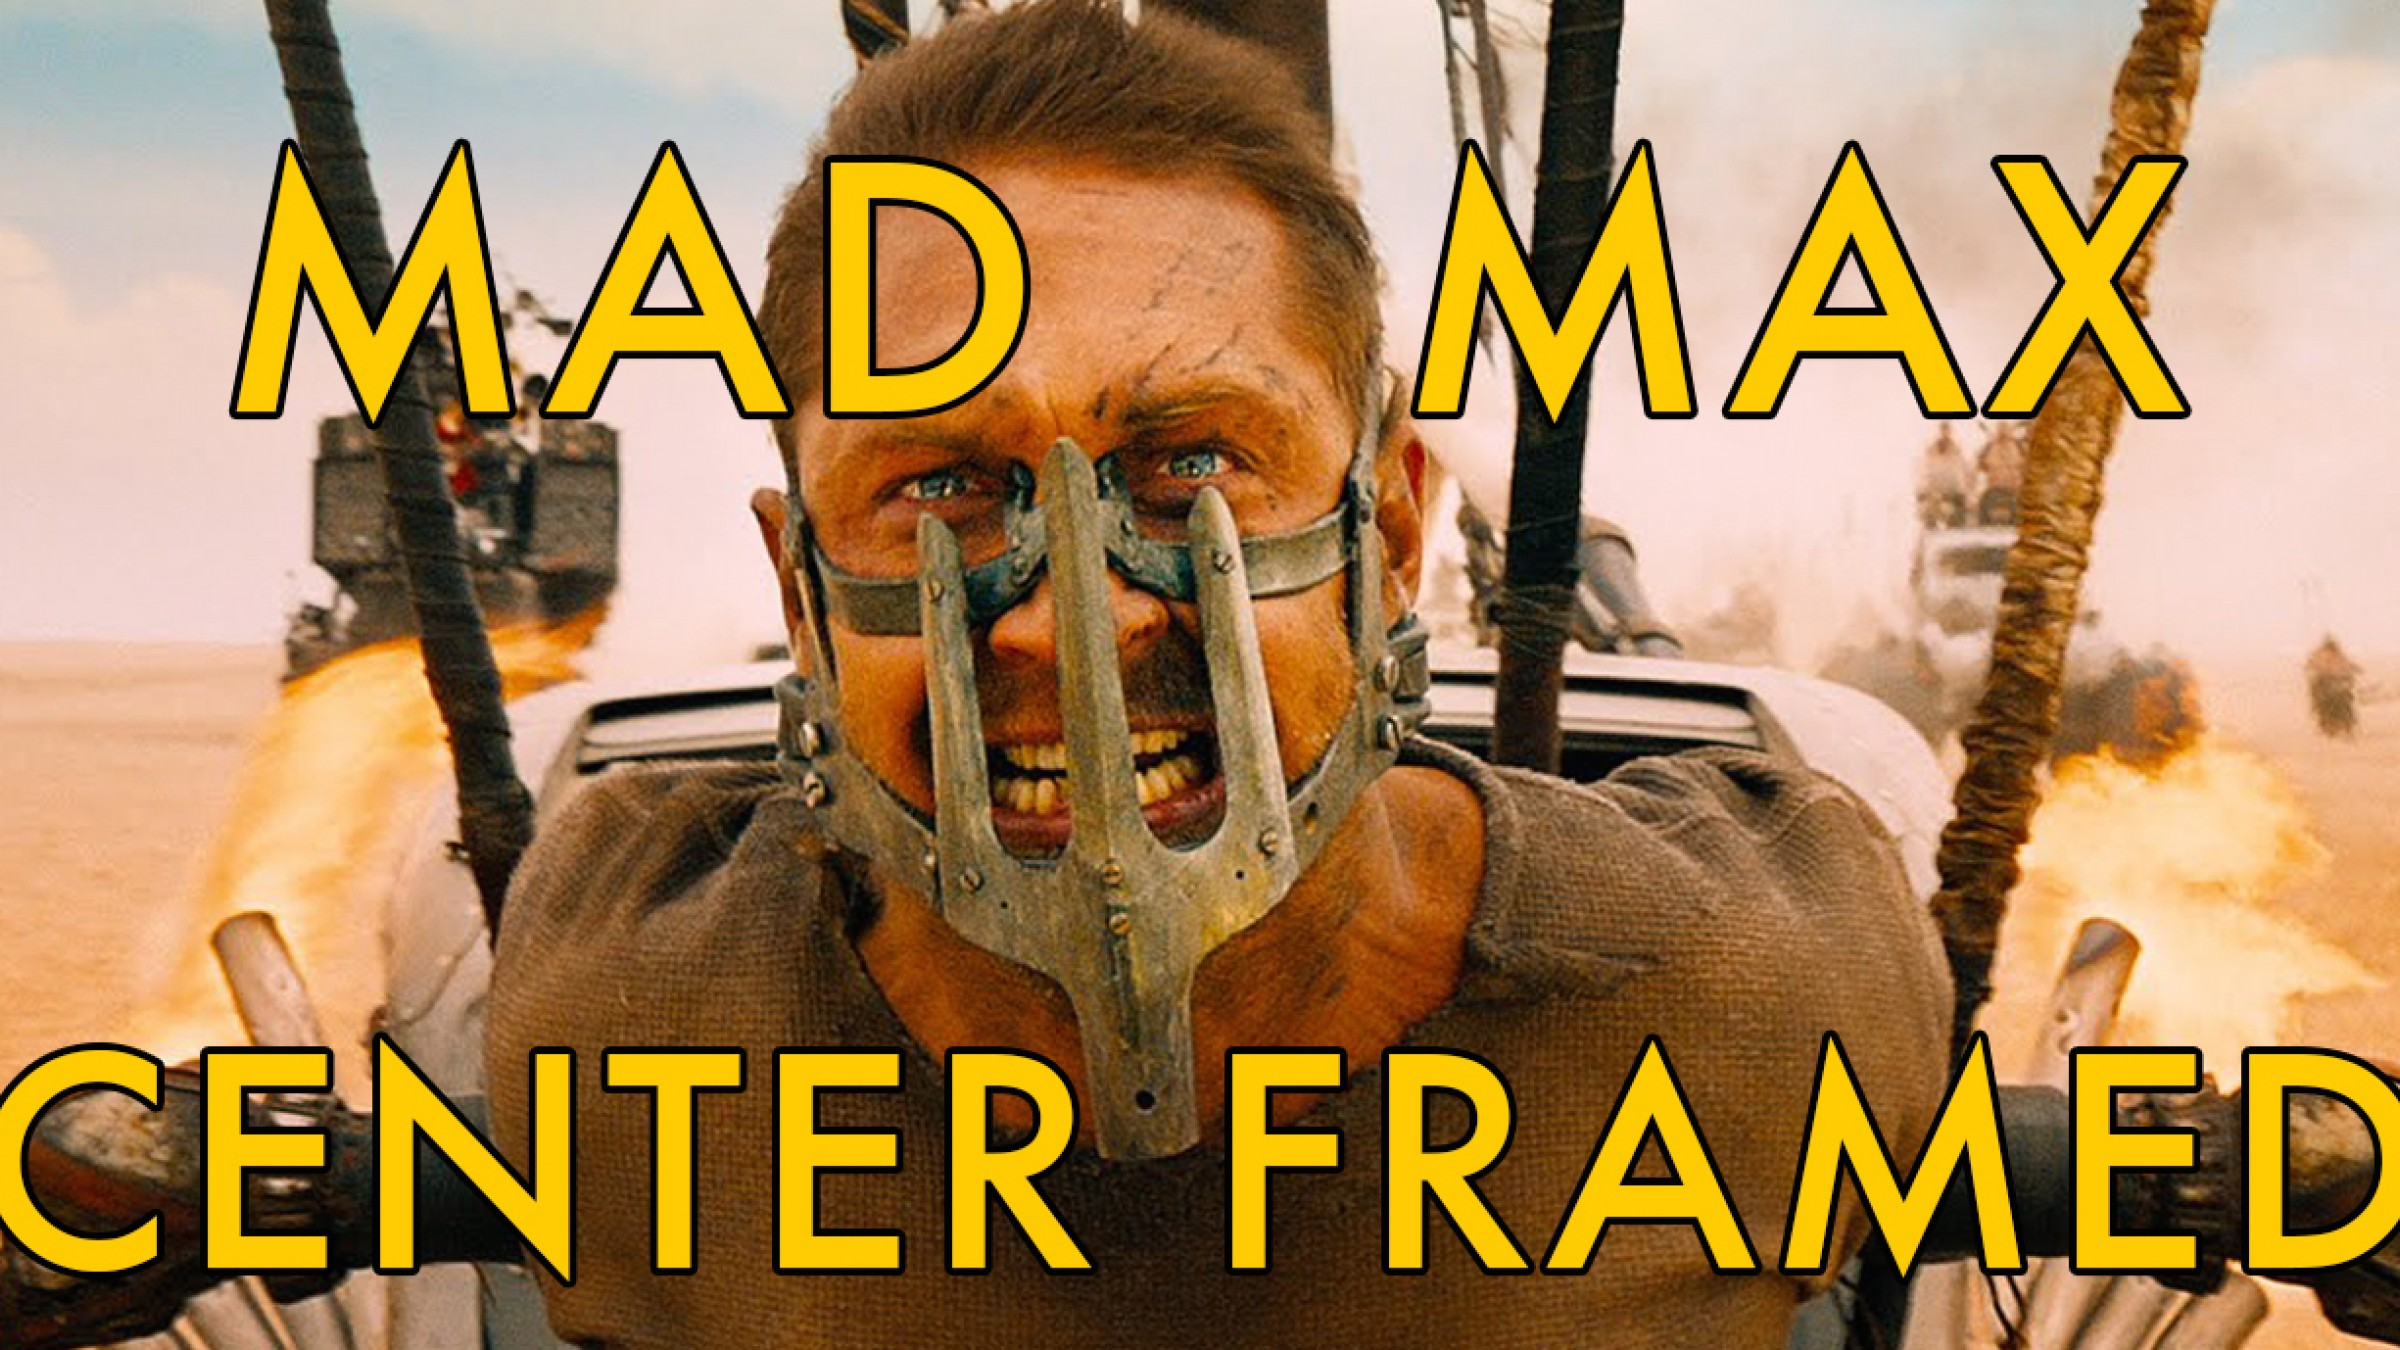 How the Framing In 'Mad Max: Fury Road' Keeps the Viewer Oriented in a Chaotic World